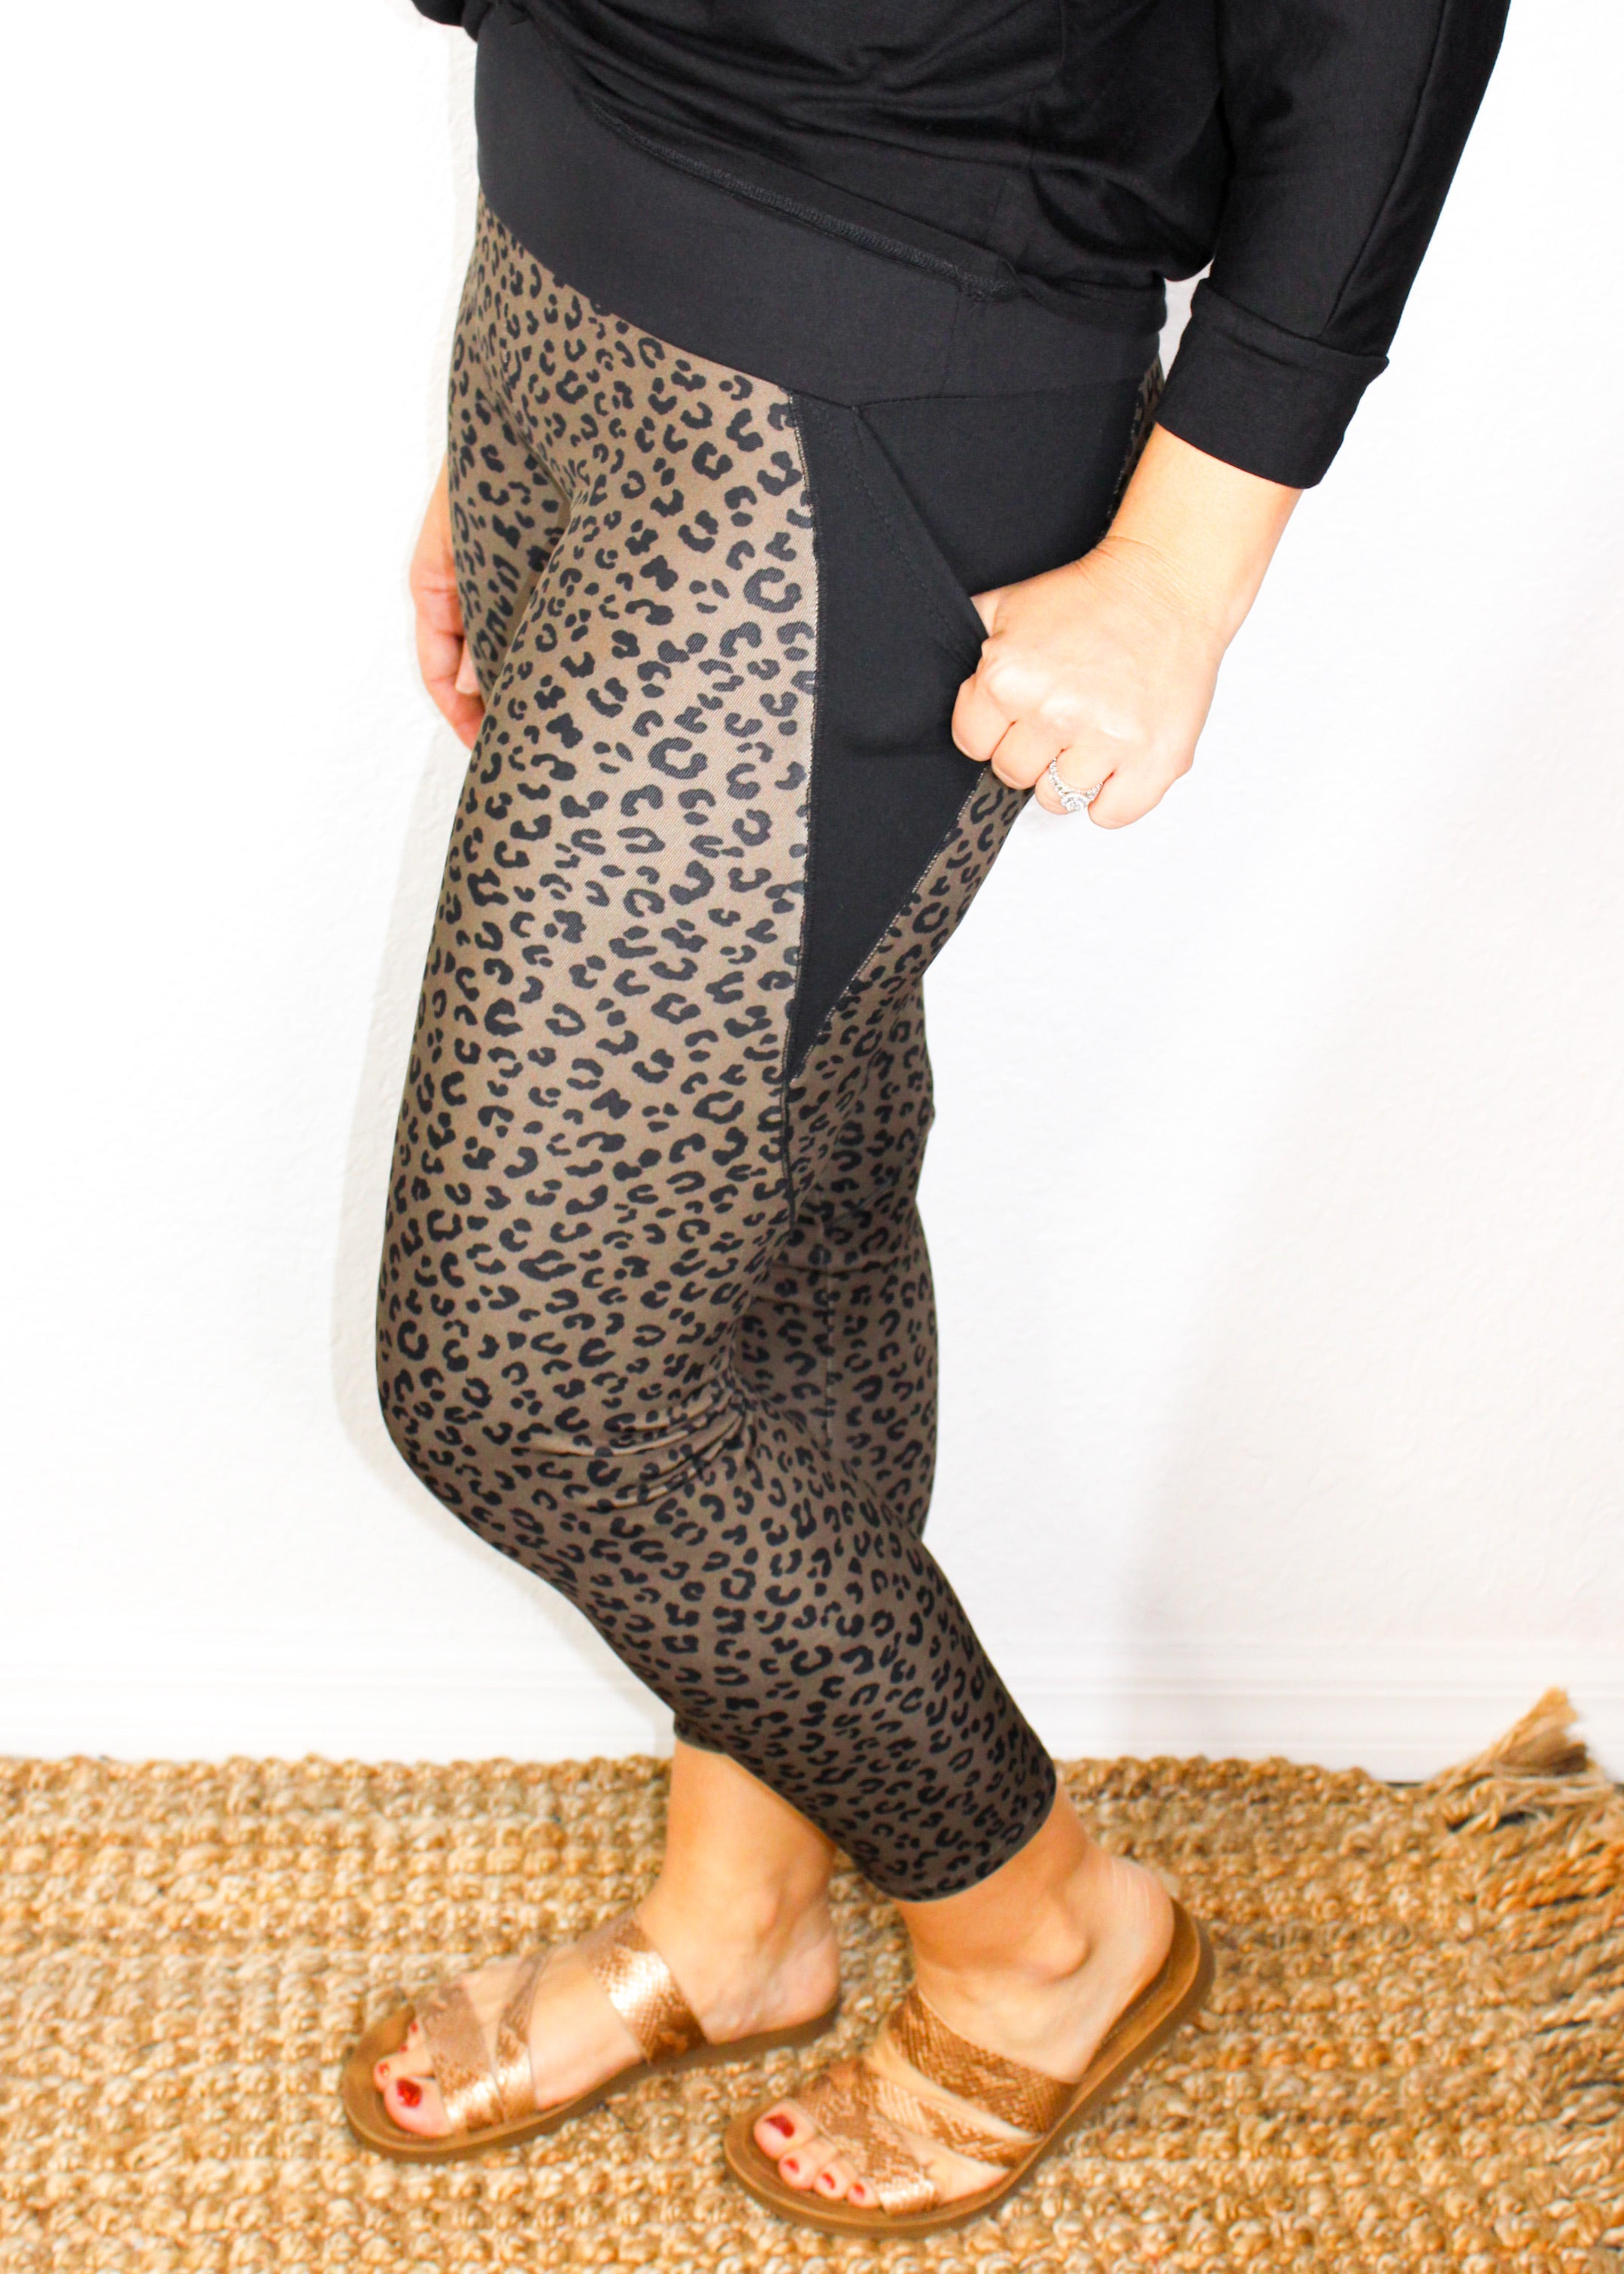 You And I Collide Leggings